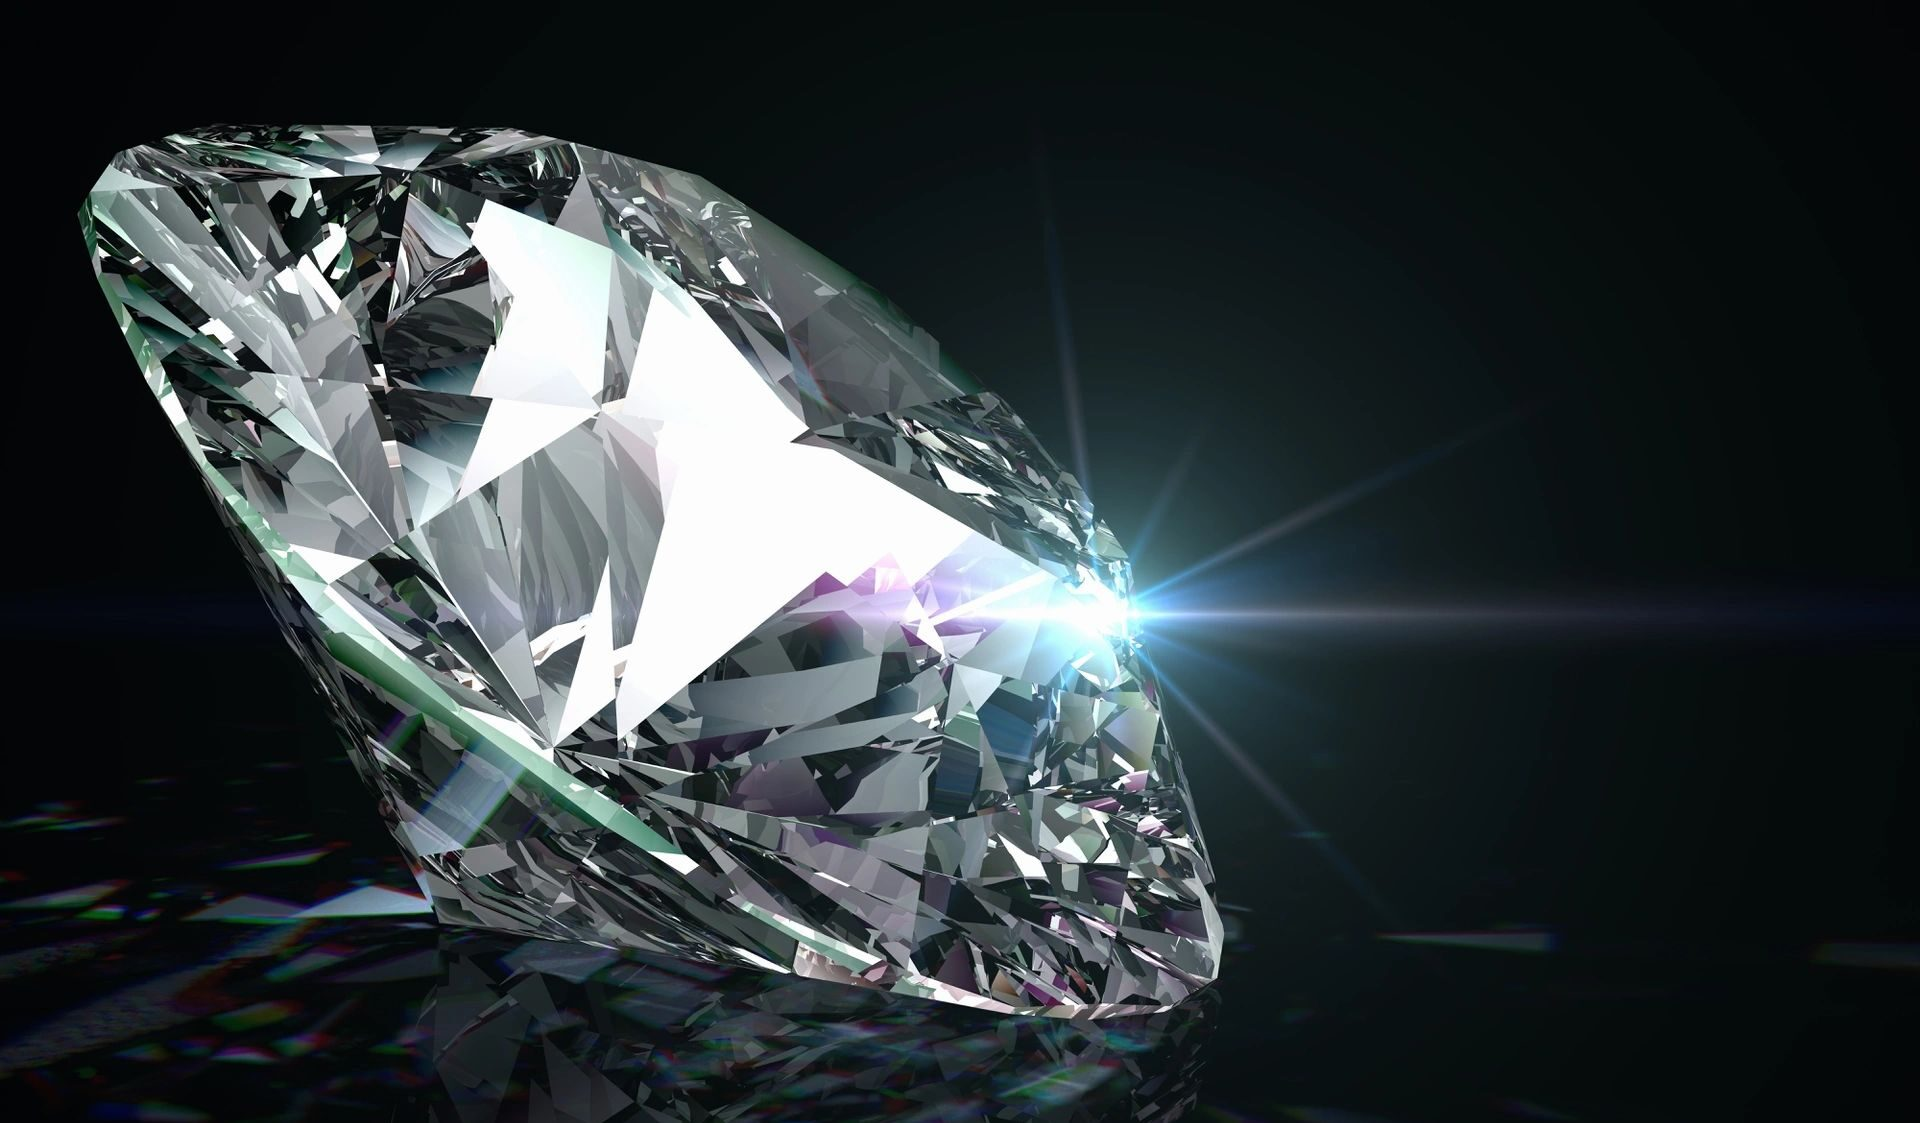 diamonds can conduct electricity